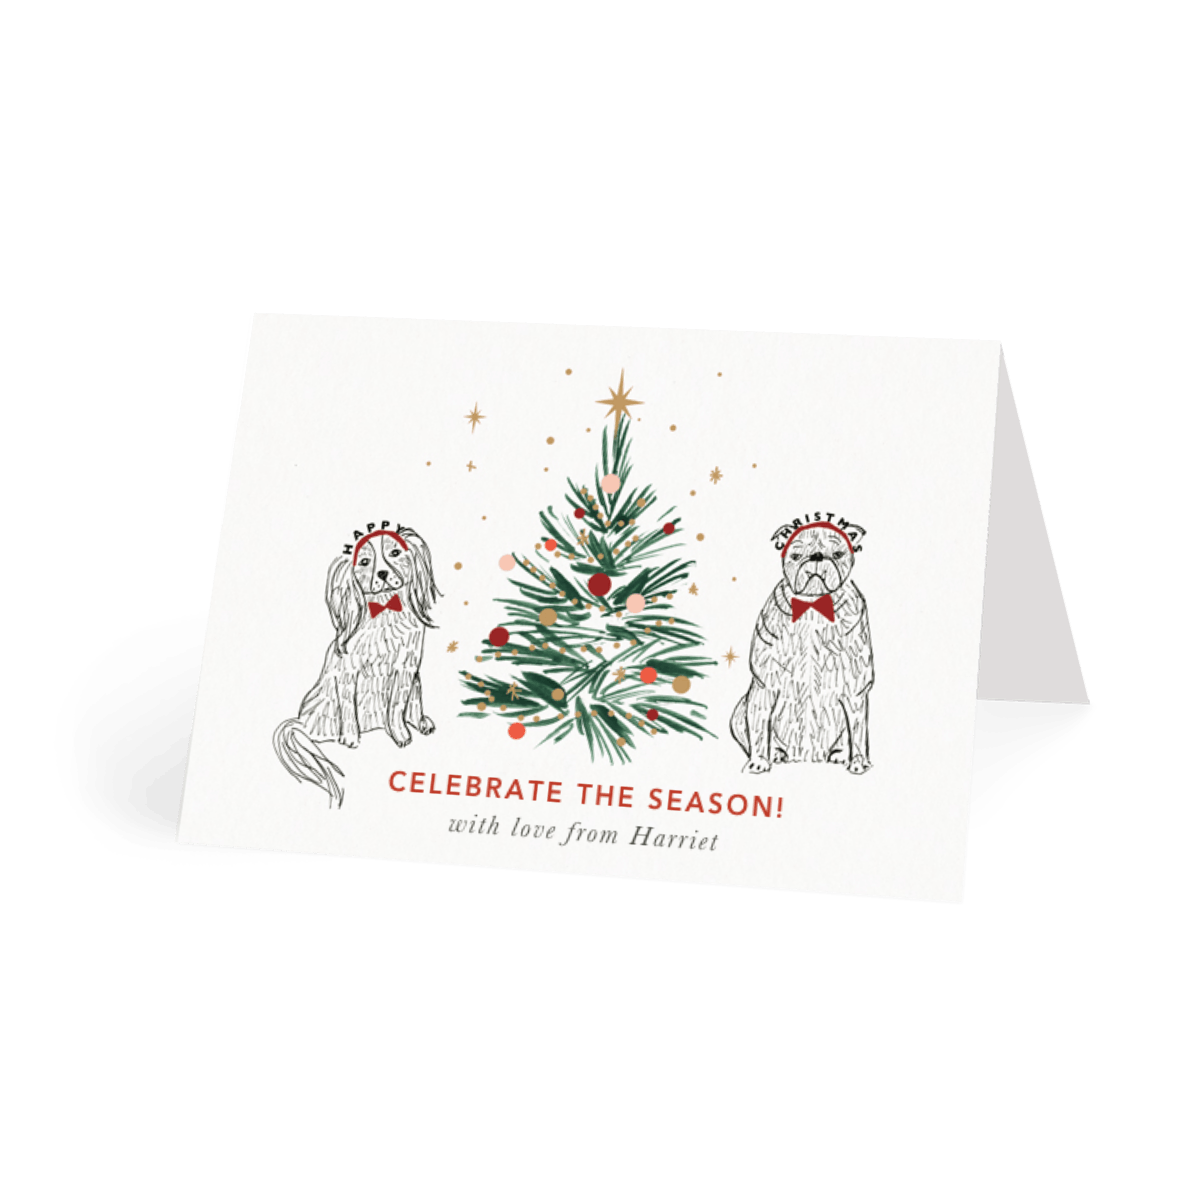 Https%3a%2f%2fwww.papier.com%2fproduct image%2f95086%2f14%2fhappy christmas dogs 23787 front 1573145785.png?ixlib=rb 1.1